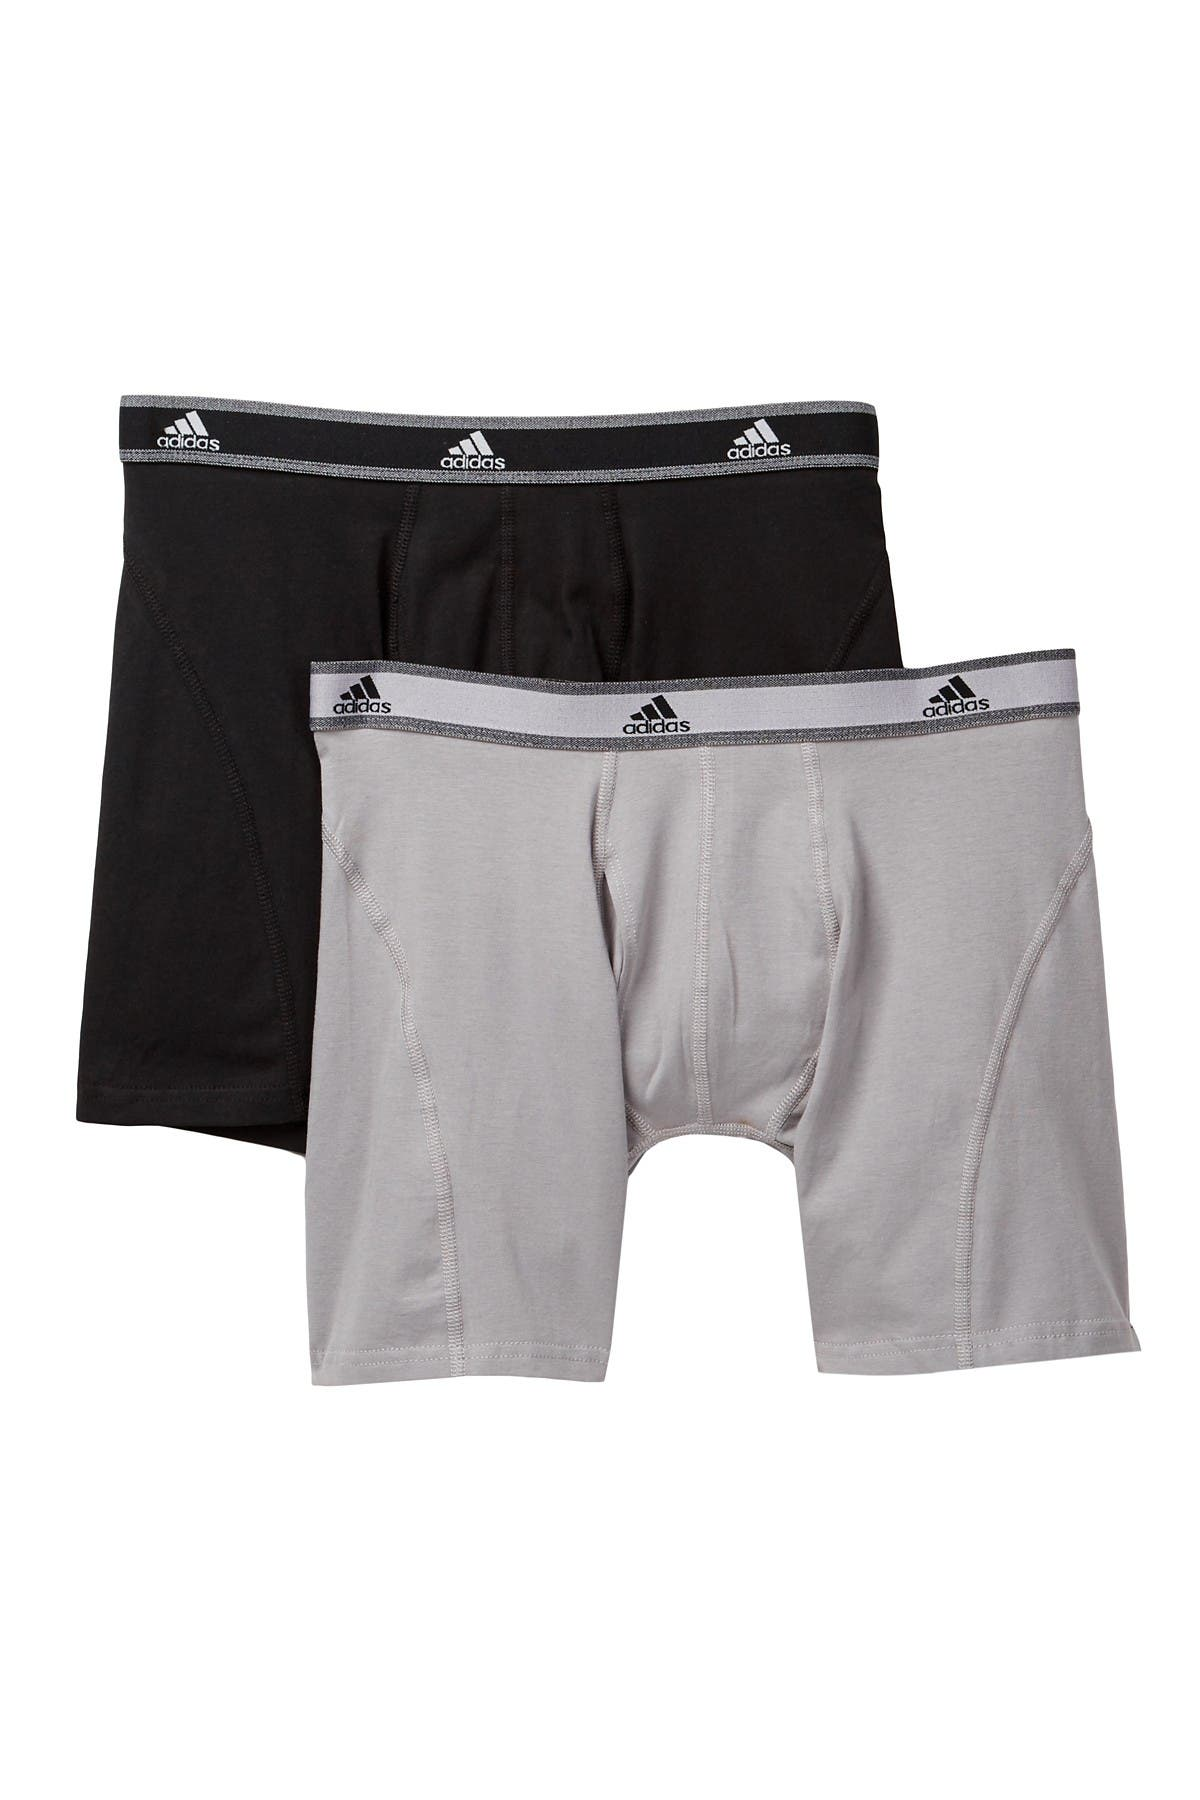 Image of adidas Athletic Stretch Relaxed Boxer Brief - Pack of 2